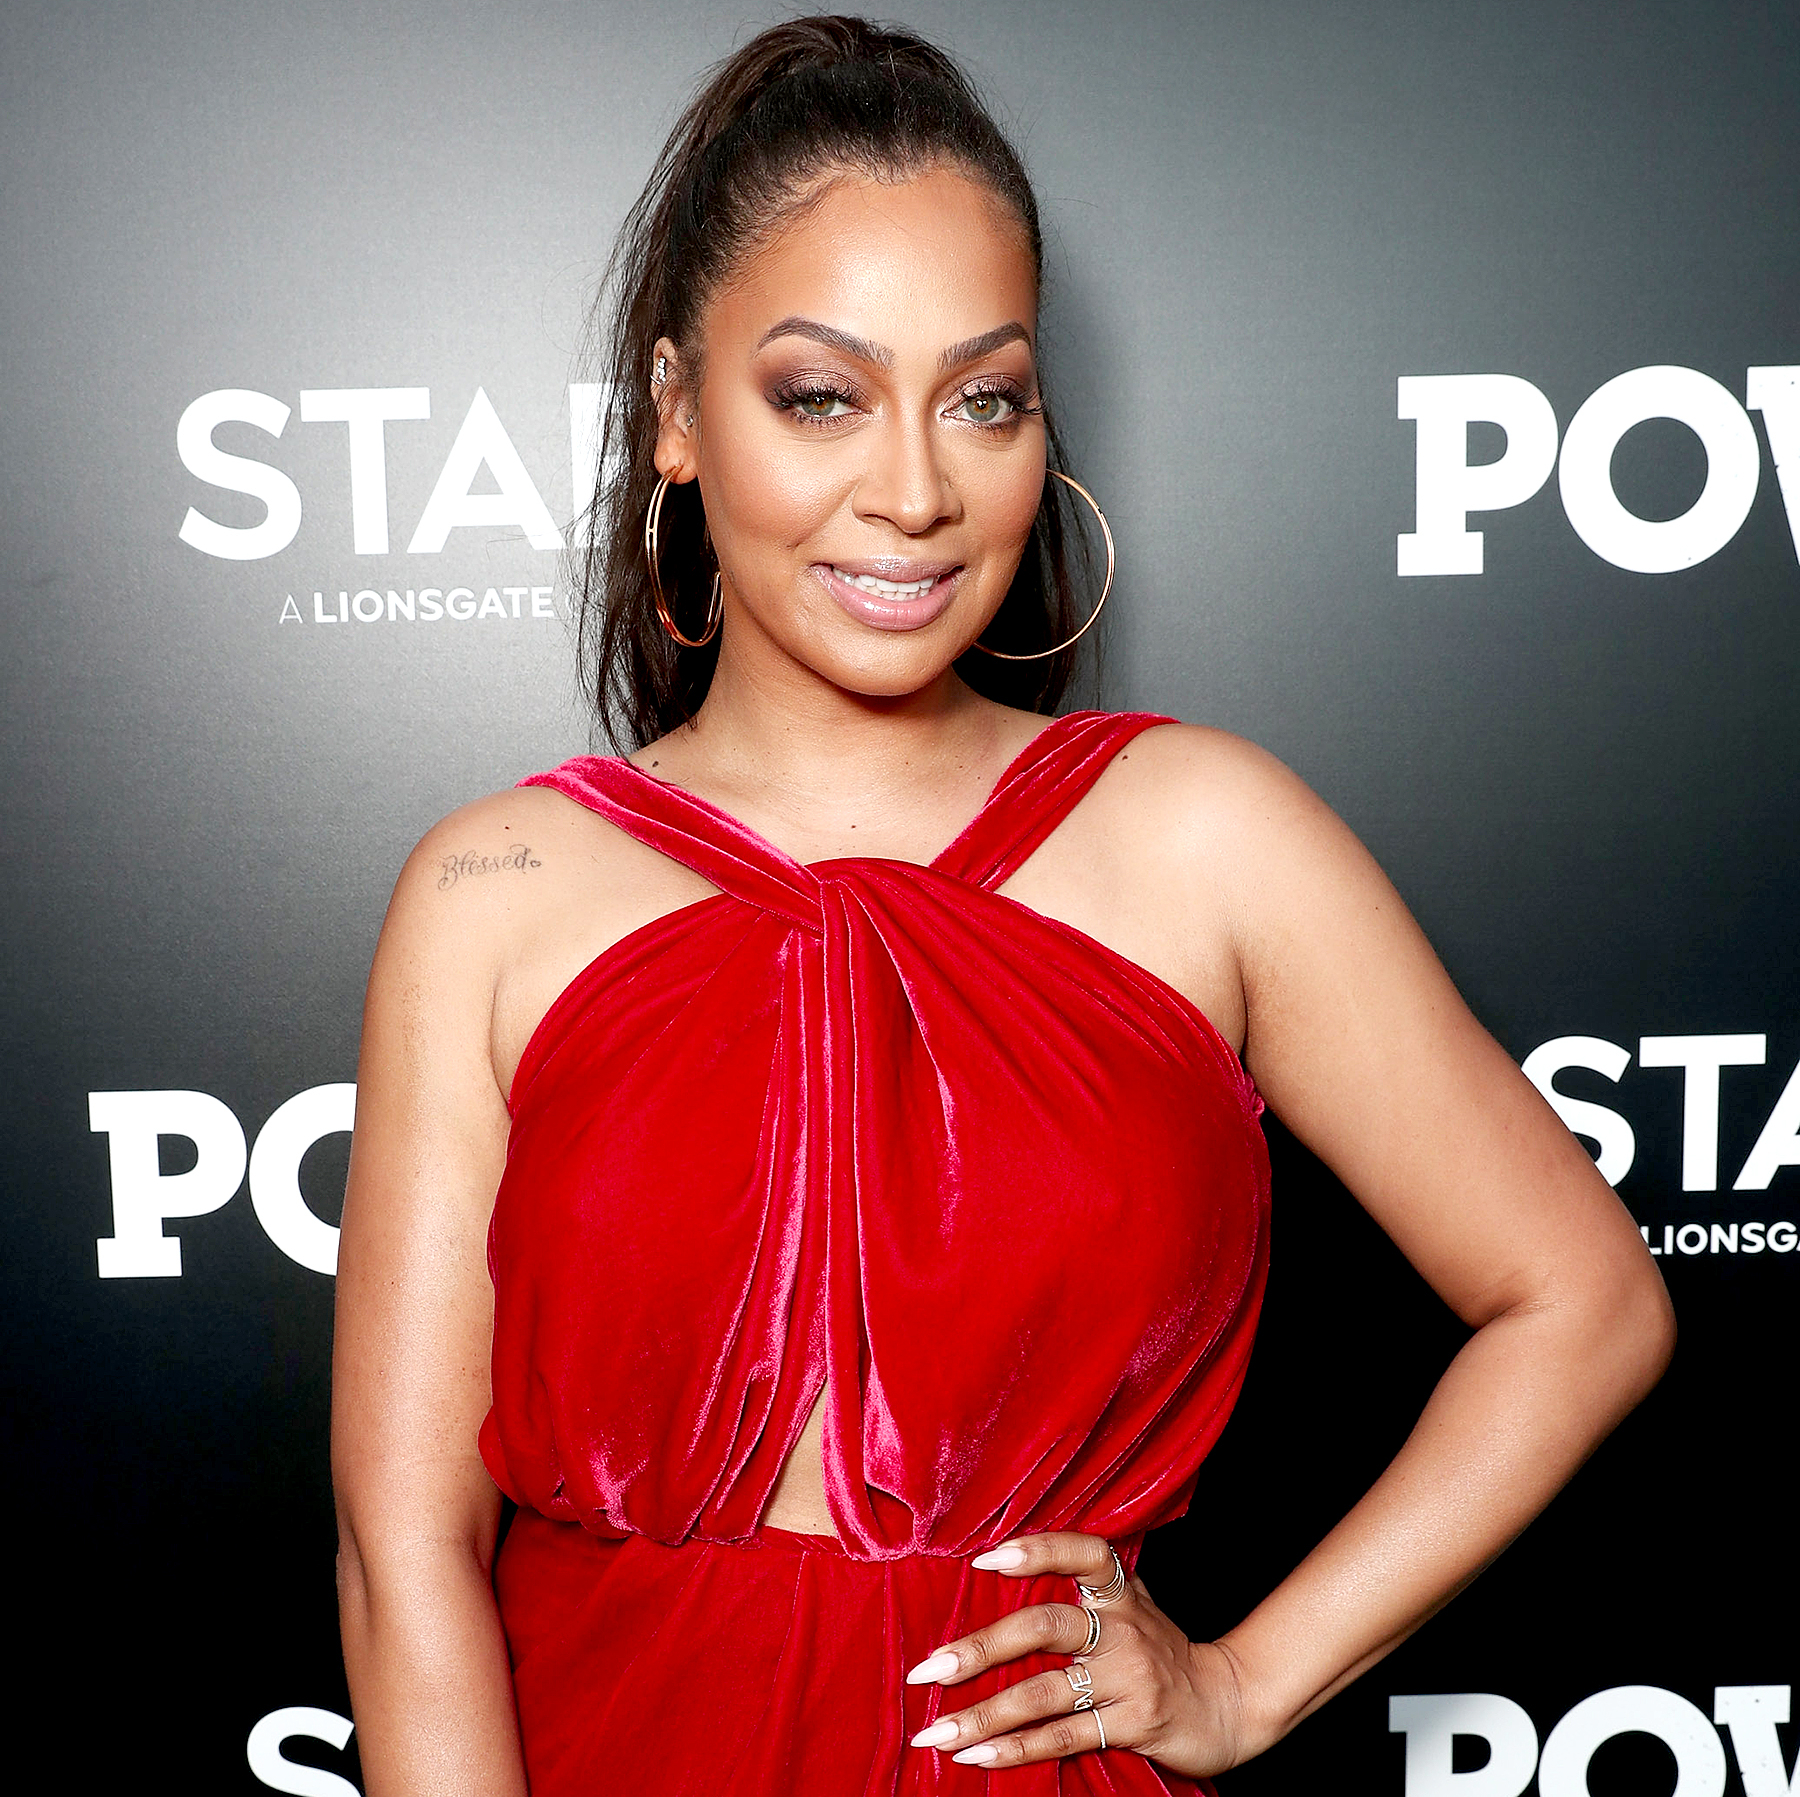 La La Anthony: 25 Things You Didn't Know About Me (I'm Obsessed With White Castle)